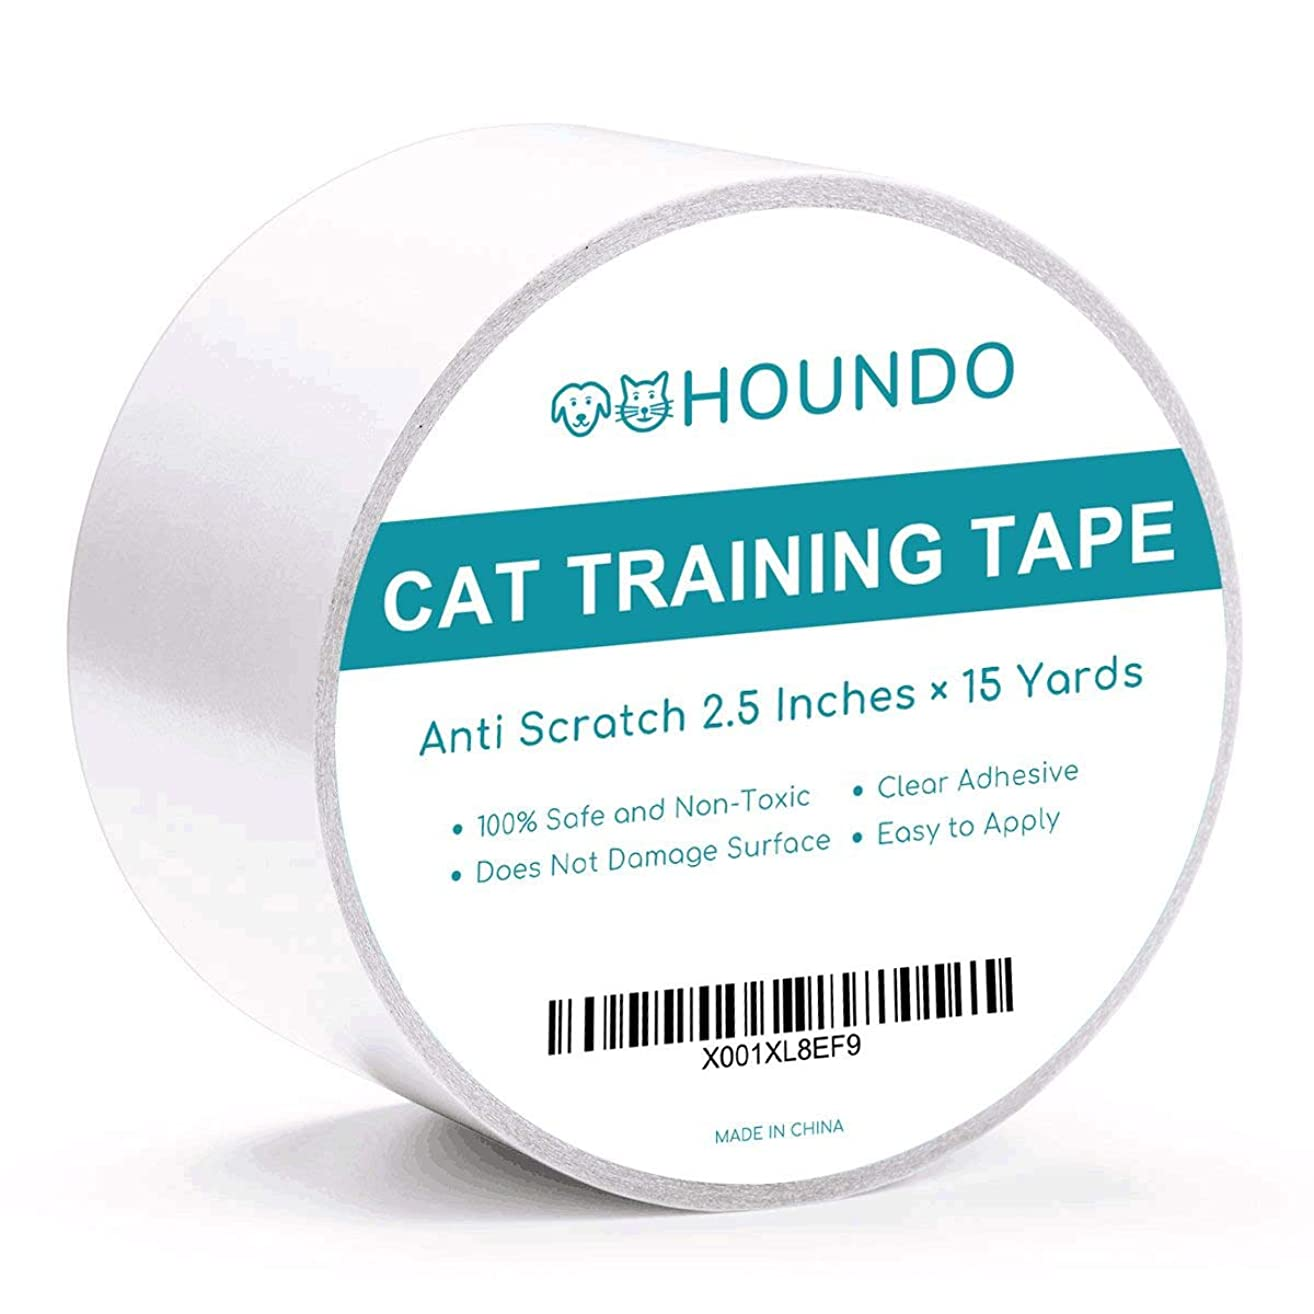 Houndo Anti-Scratch Cat Training Tape | Quickly Stops Cats from Scratching Furniture, Couch, Chair, Sofa, Rug, and Door | Cat Scratch Deterrent